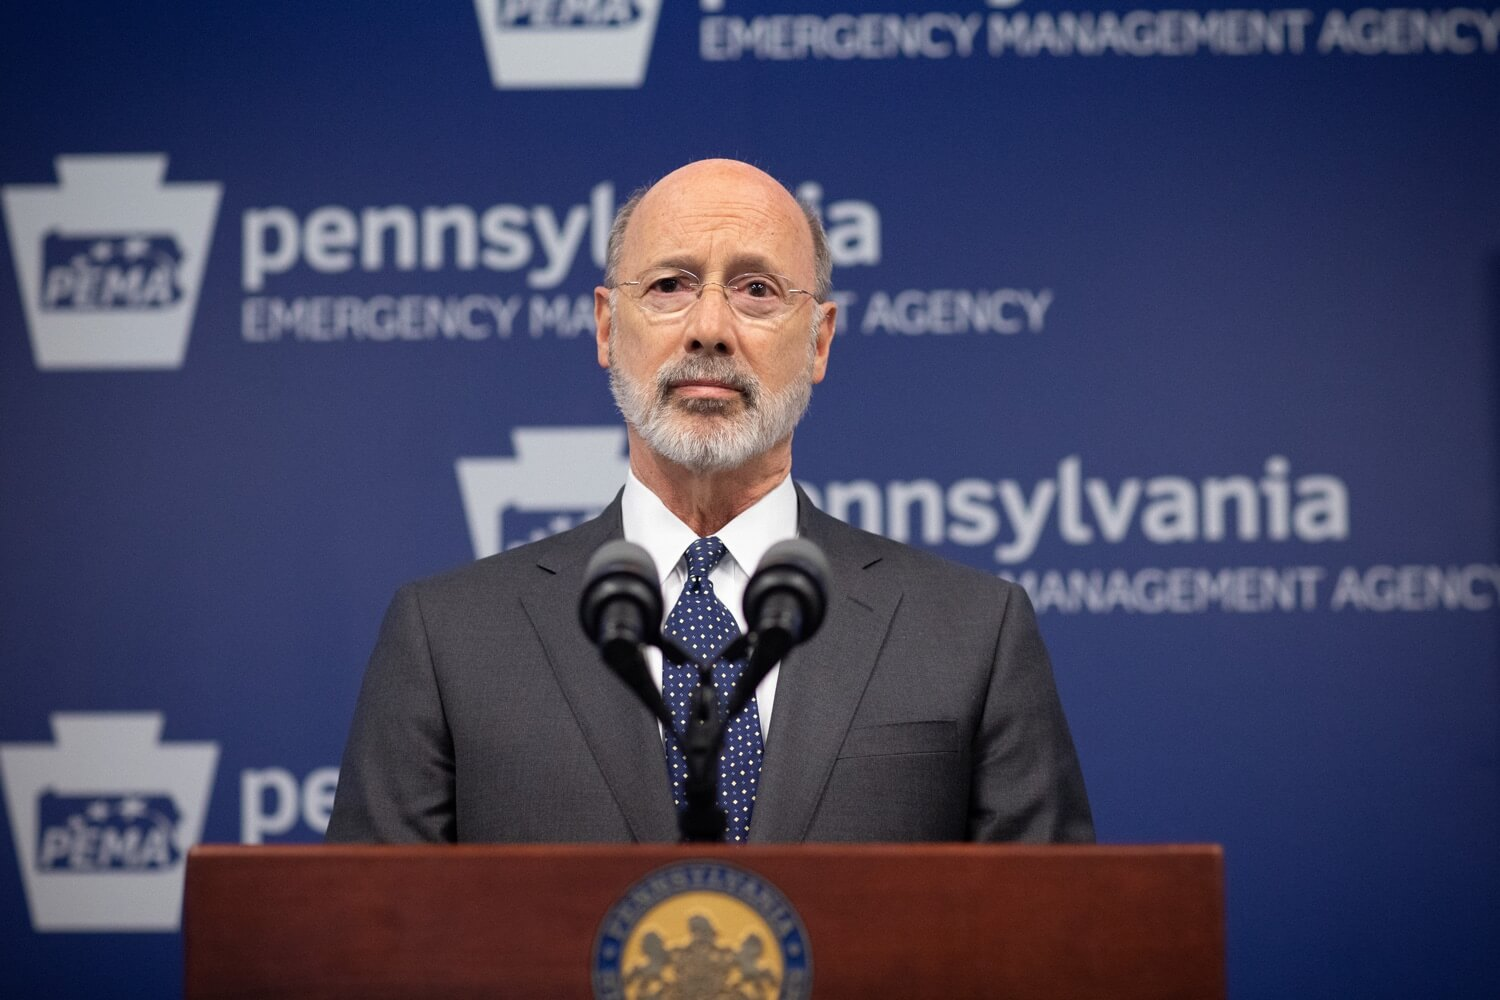 Pa. Gov. Tom Wolf Cautiously Offers State Plan to Relax Social Distancing by Region